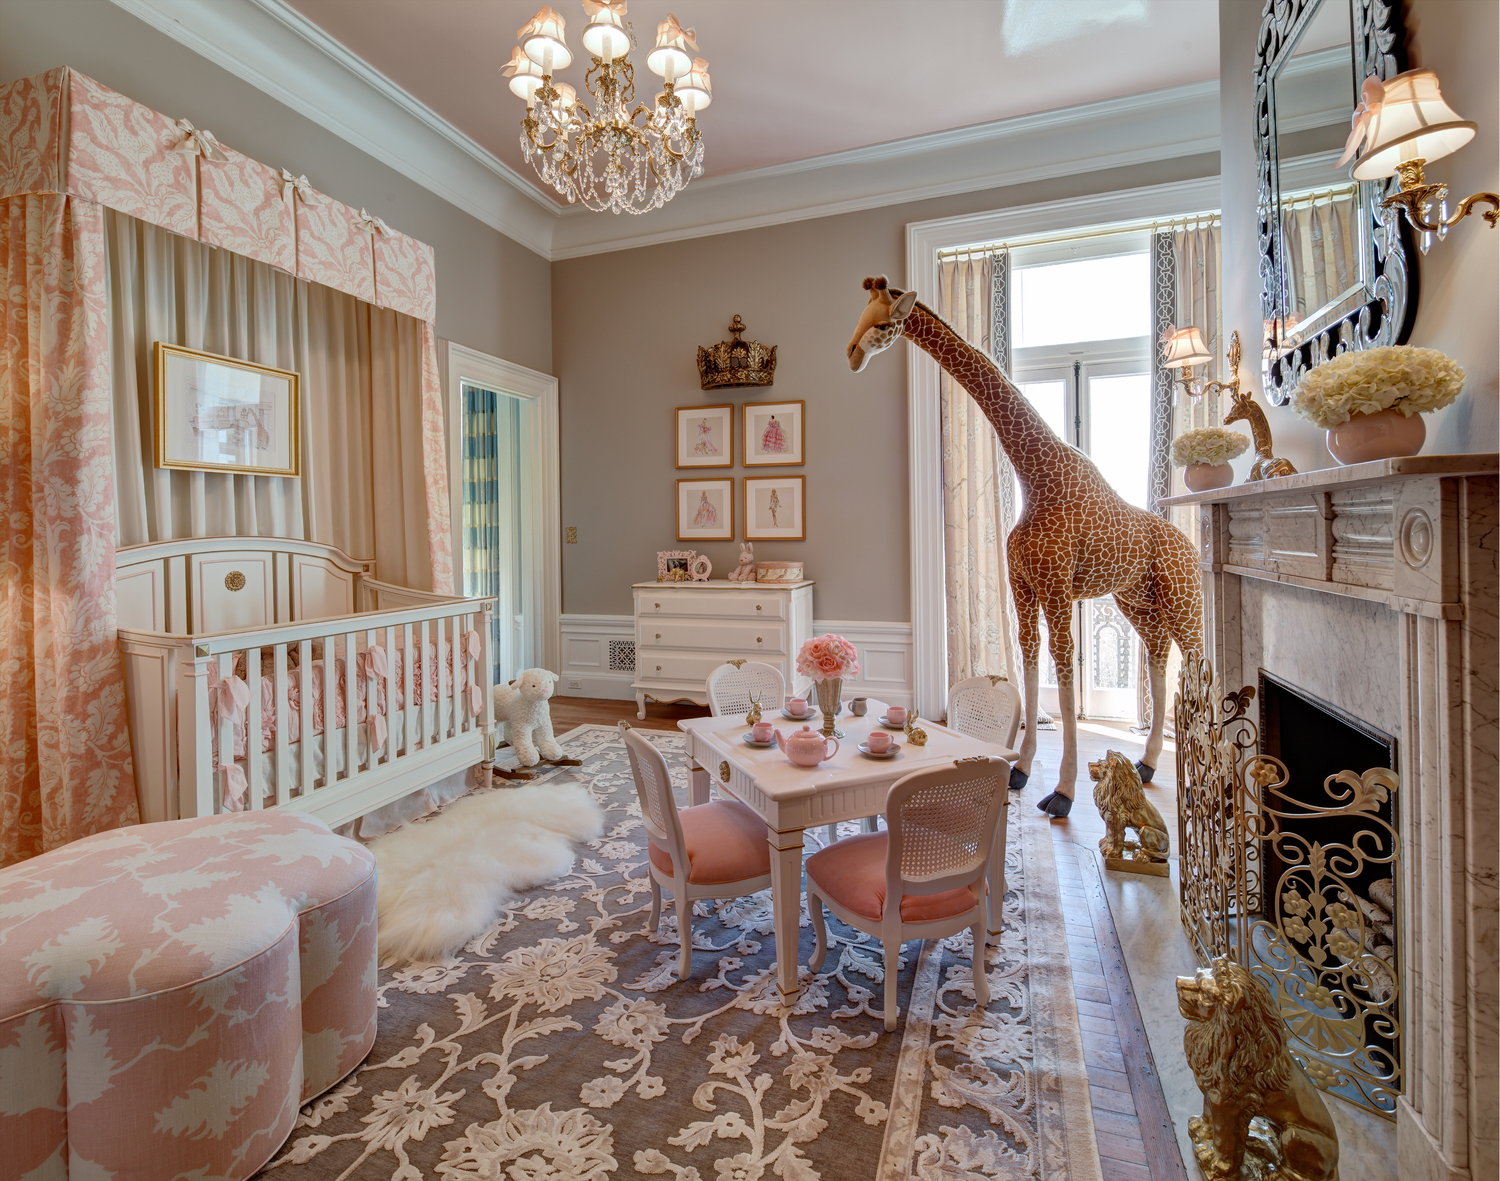 Kristin Ashley Interiors New Jersey Nursery Room